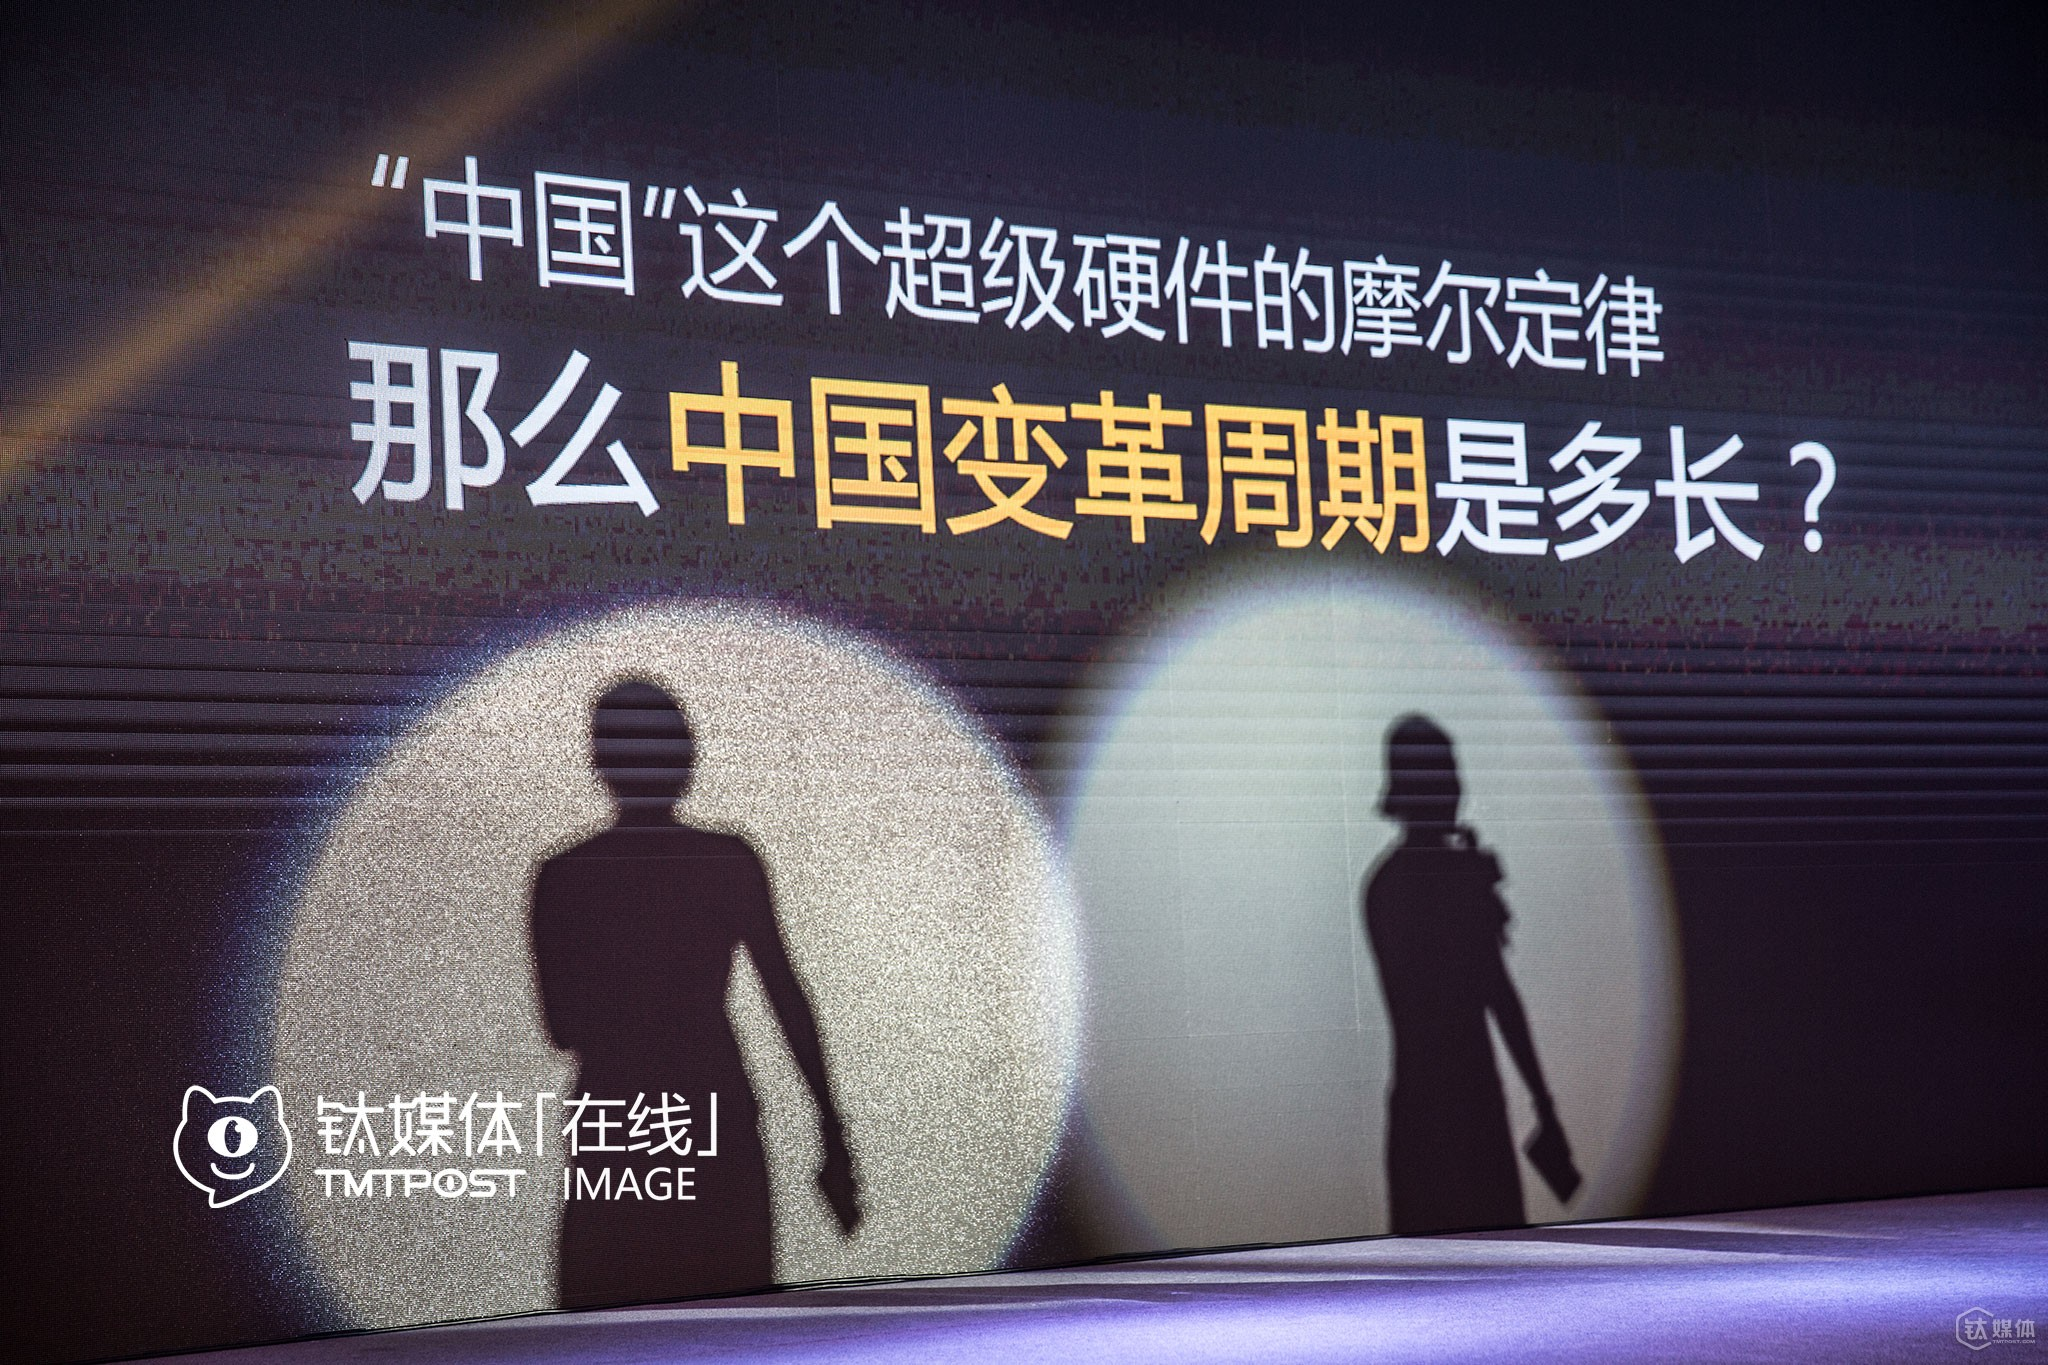 It was June, 15th, 2016. During a product upgrading conference of a company, the light followed the speaker and left a shadow on the LED screen.